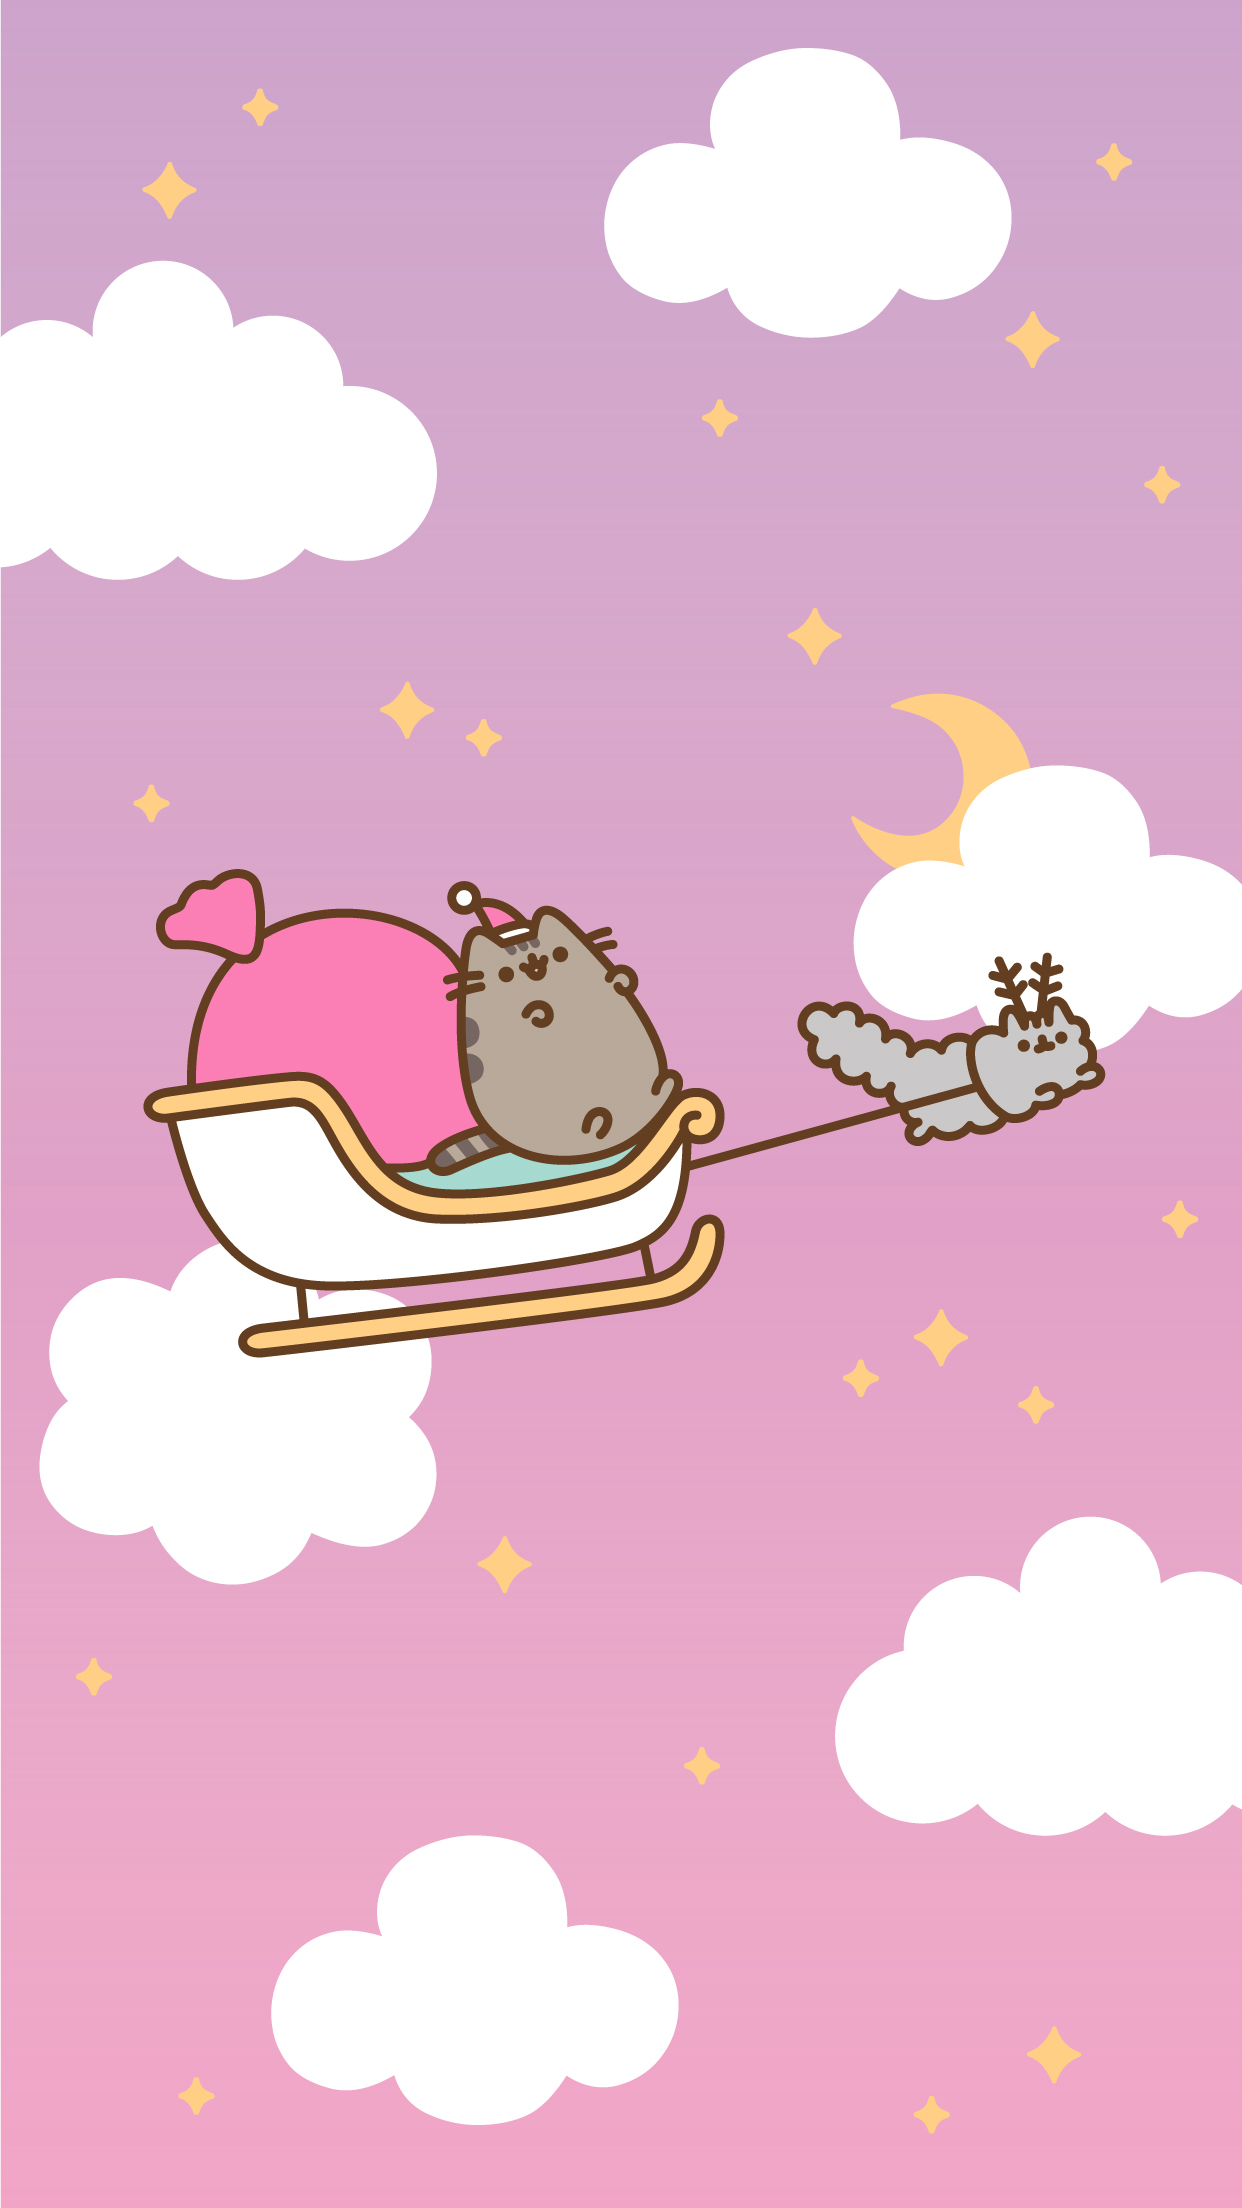 Christmas Pusheen Android and iPhone Wallpapers   ClairesBlog 1242x2208